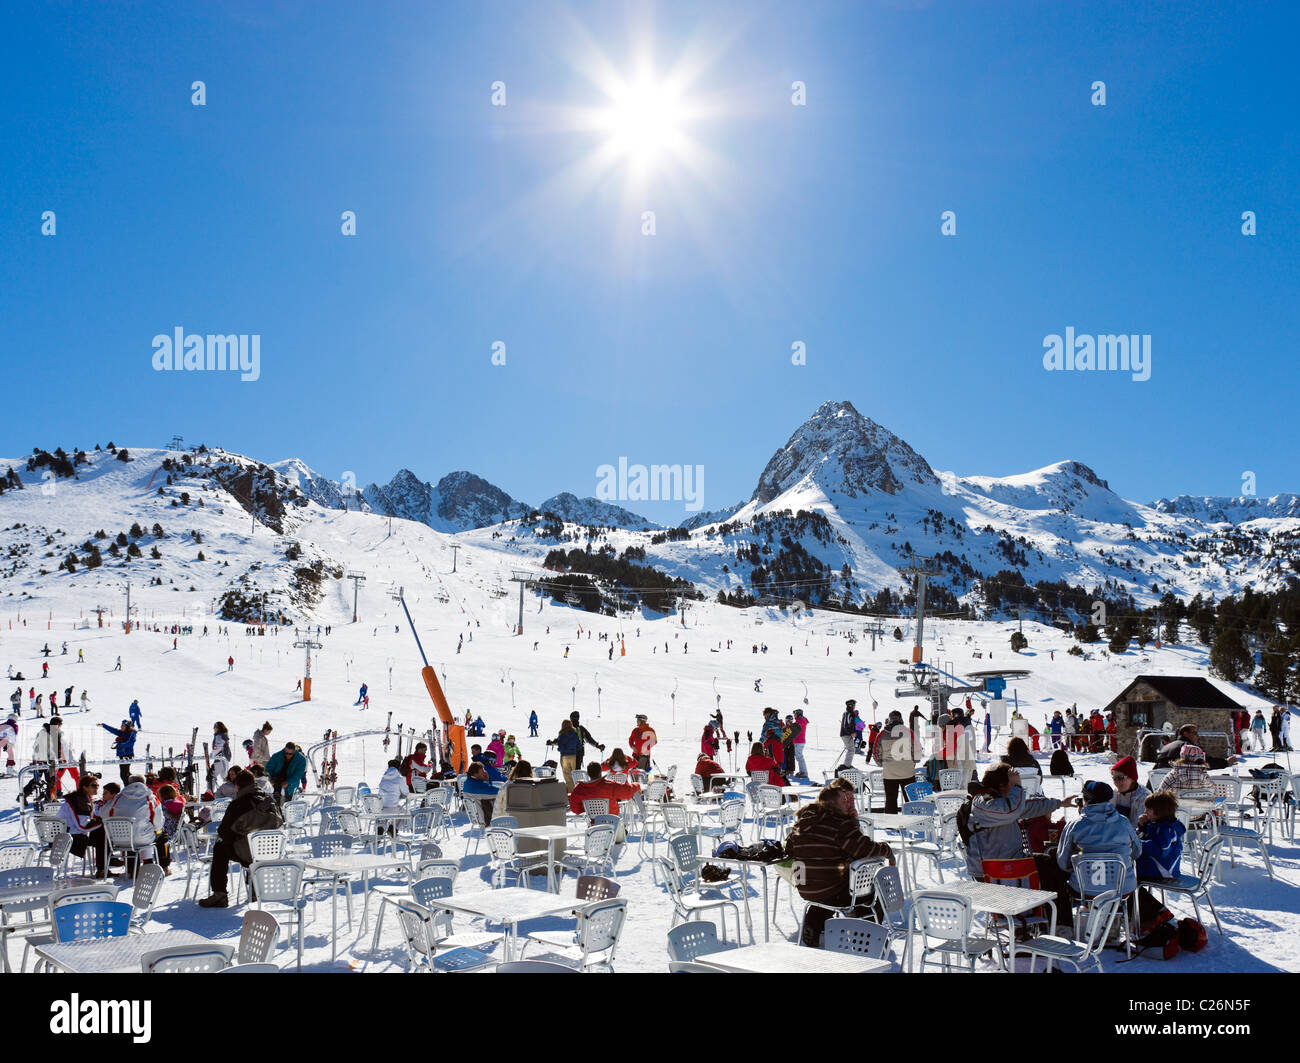 Cafe at the bottom of the slopes at Grau Roig, Pas de la Casa, Grandvalira Ski Area, Andorra - Stock Image